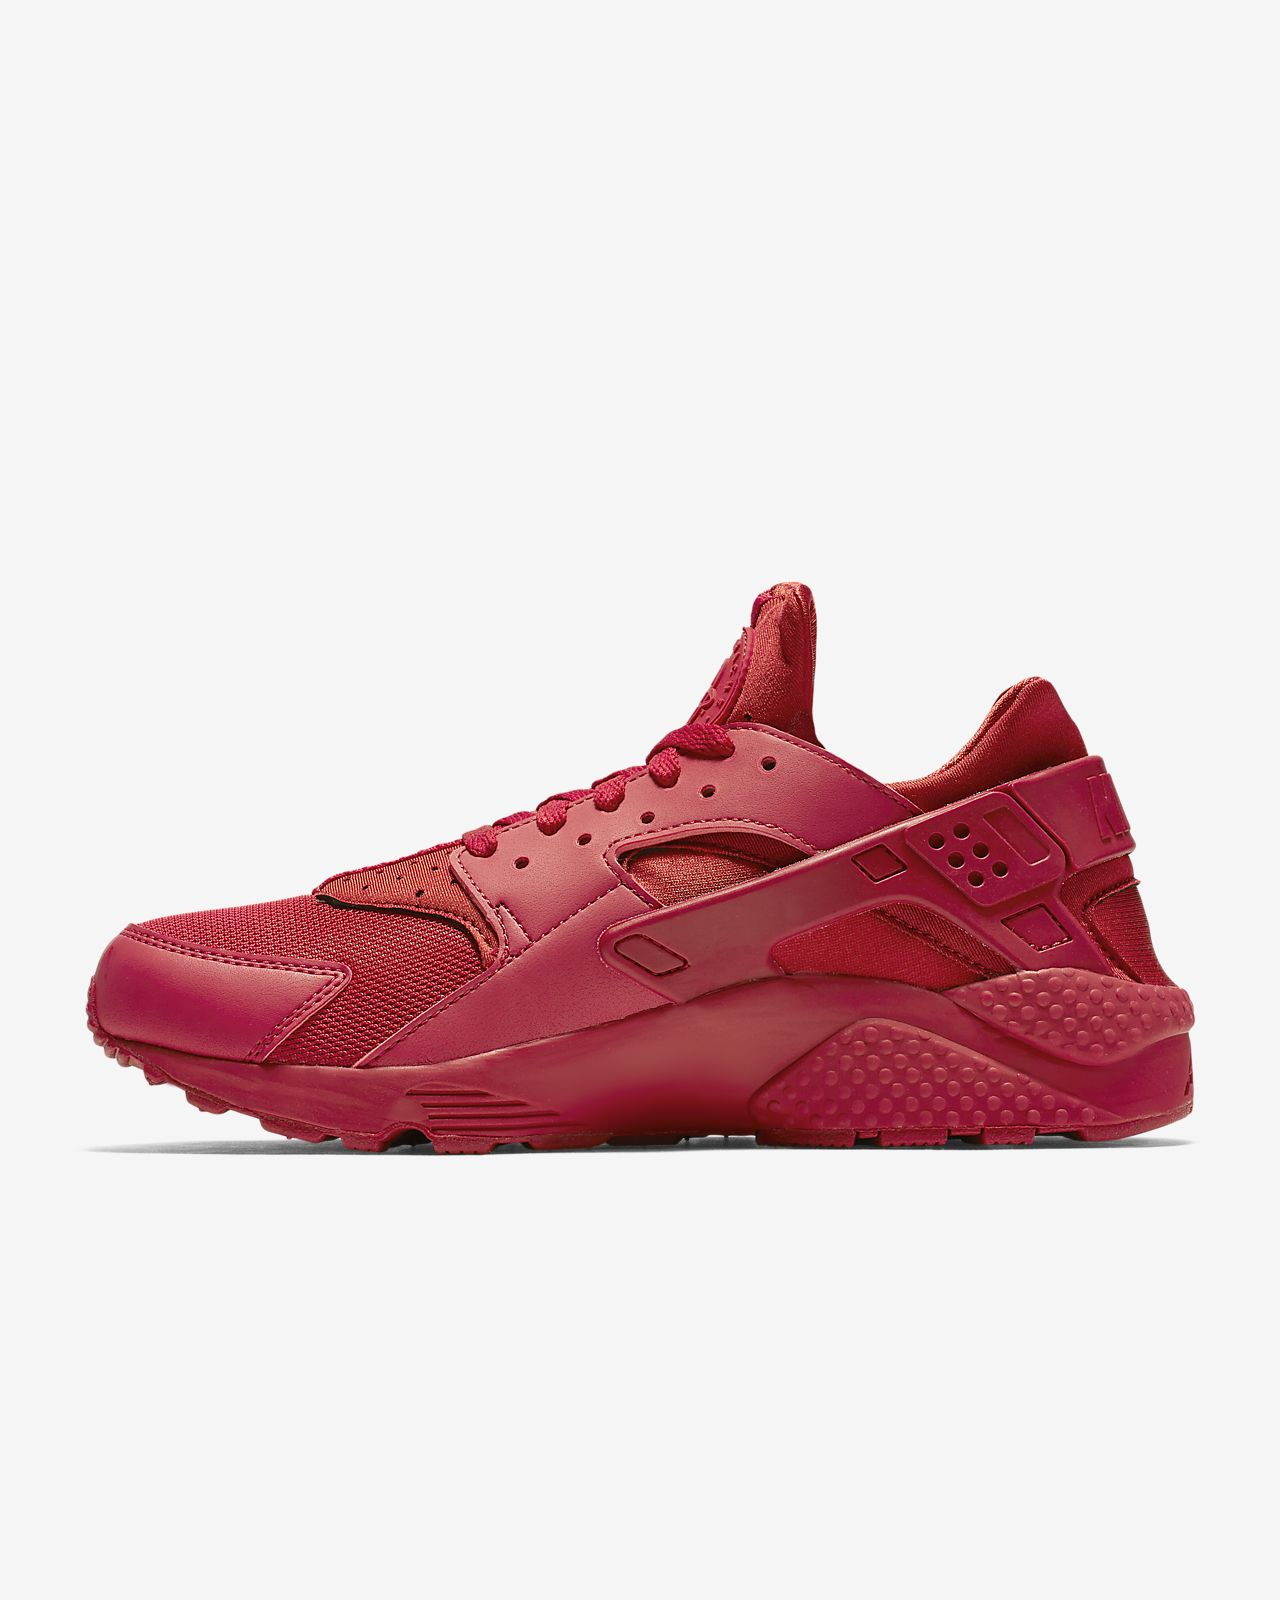 wholesale dealer e4429 bcf13 Nike Air Huarache Men's Shoe